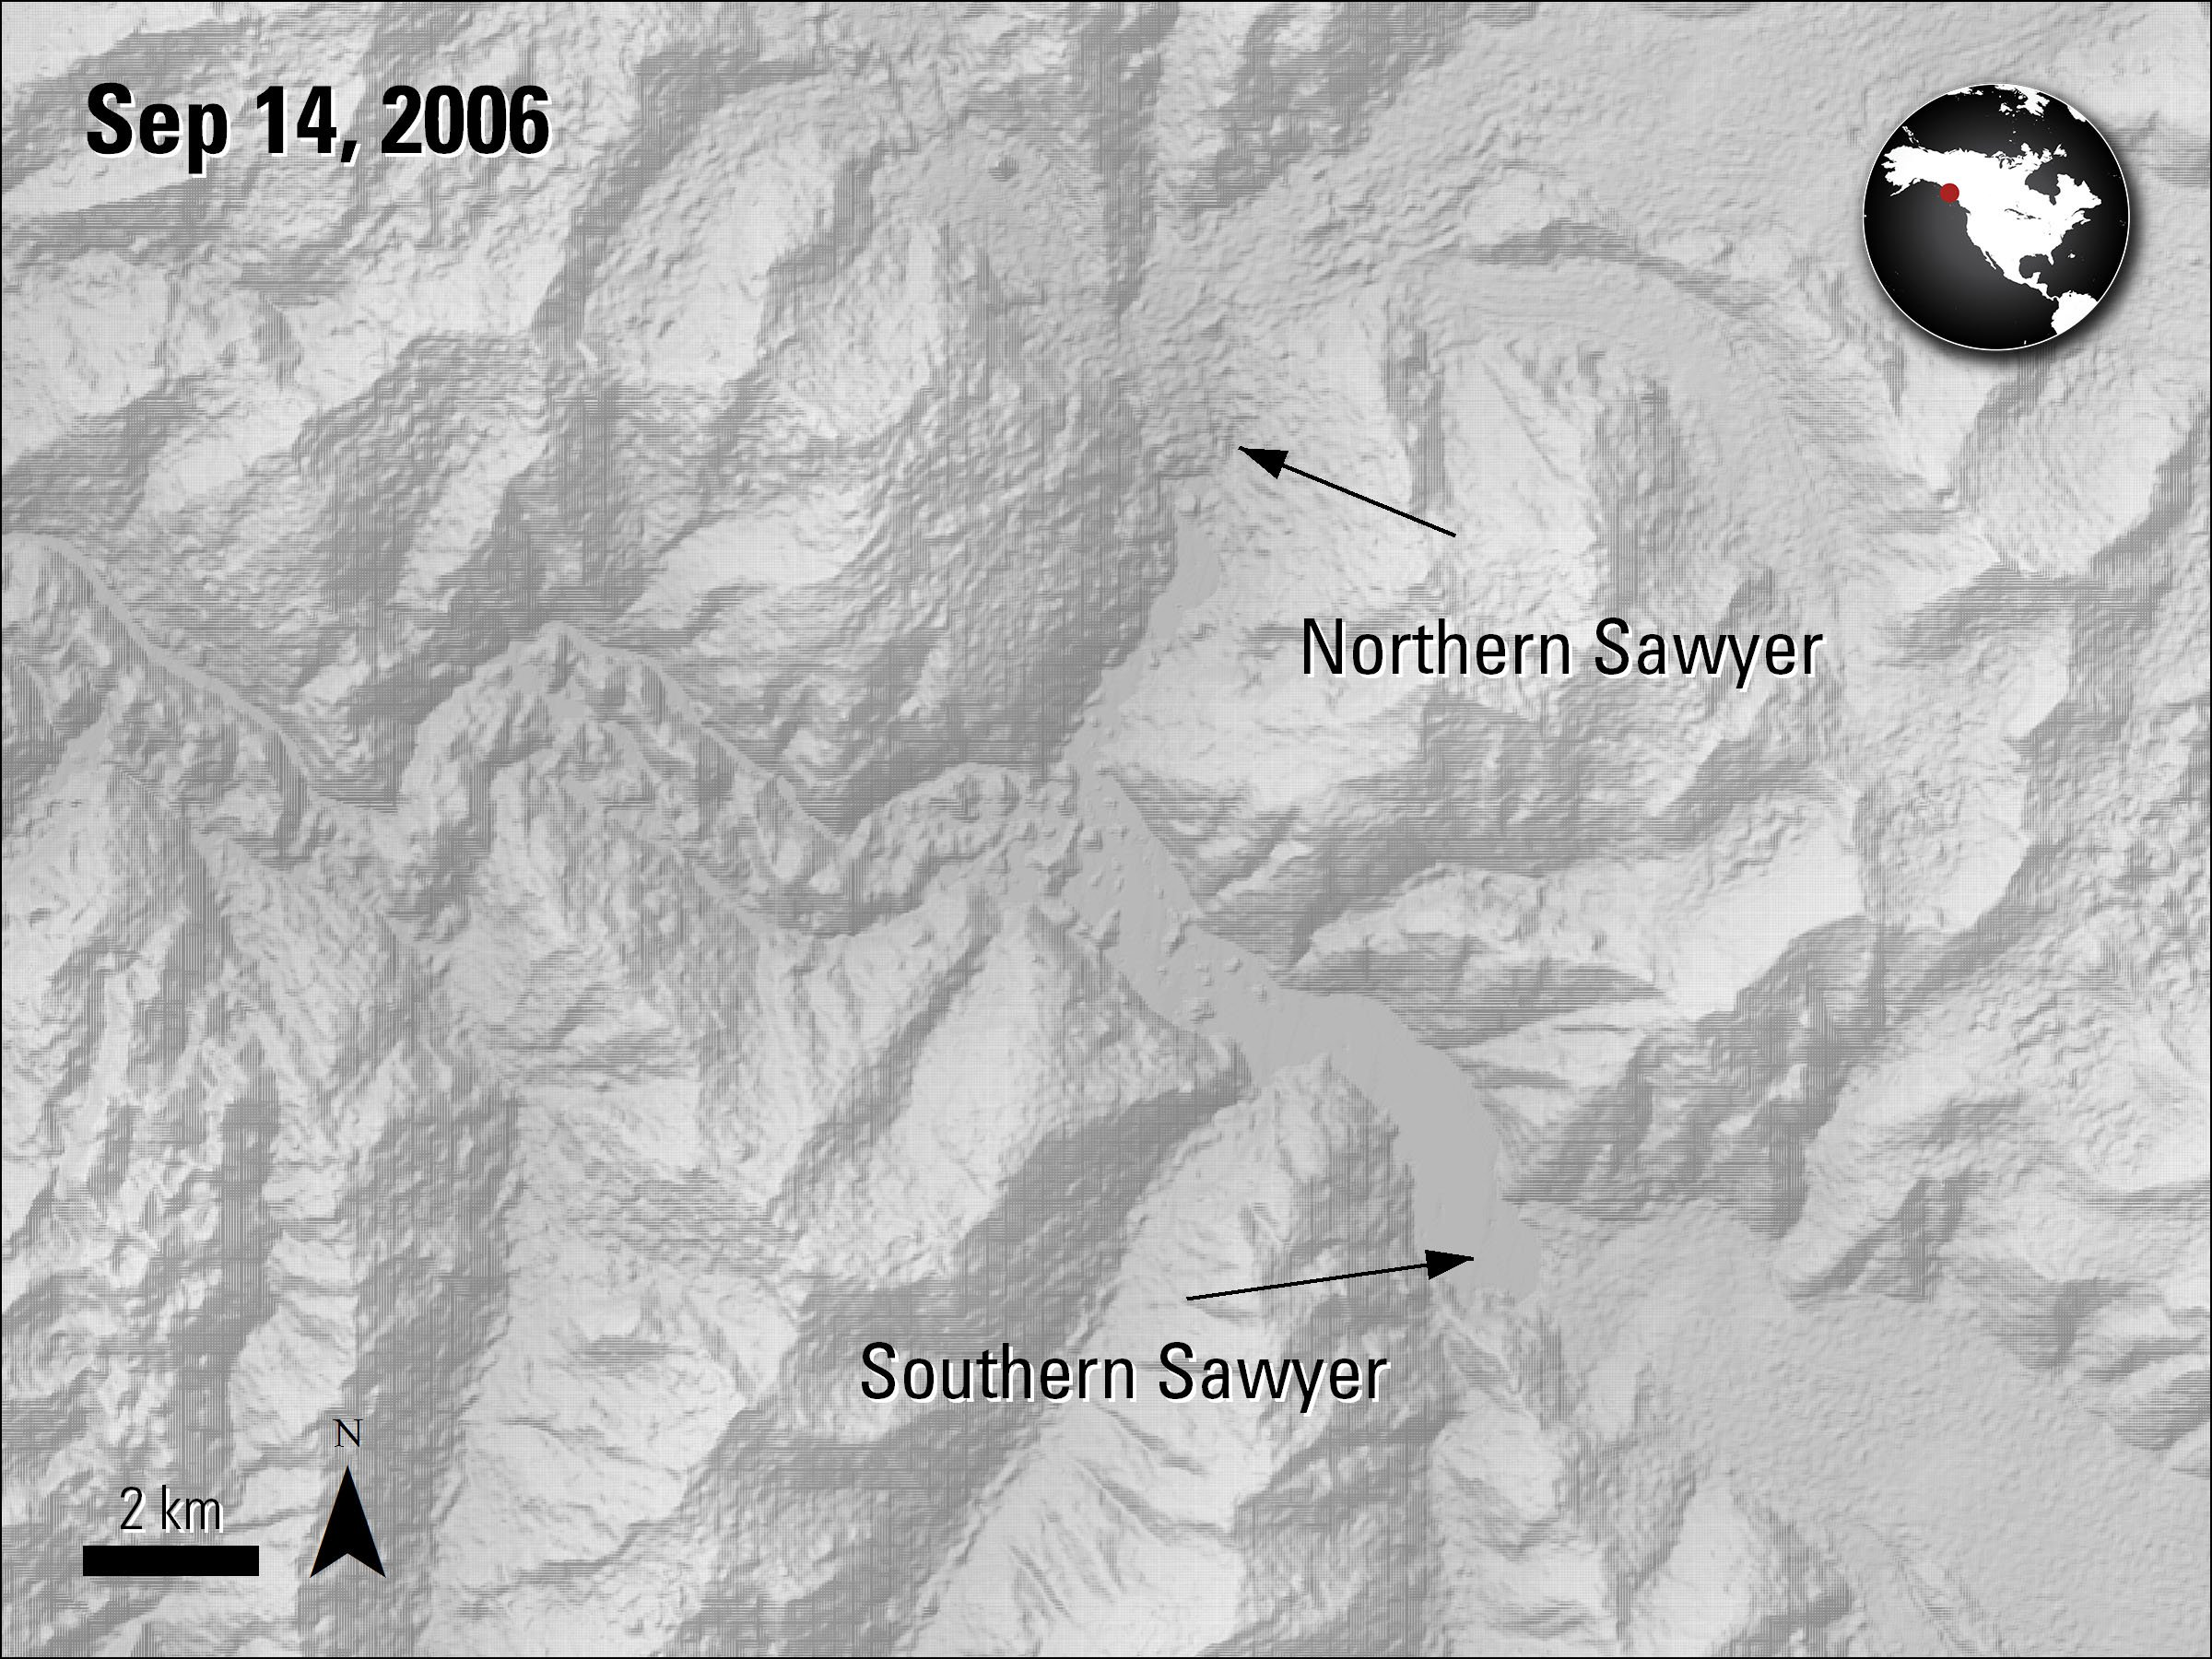 Terra ASTER Elevation imagery over Northern Sawyer and Southern Sawyer glaciers in Alaska, acquired September 14, 2006..